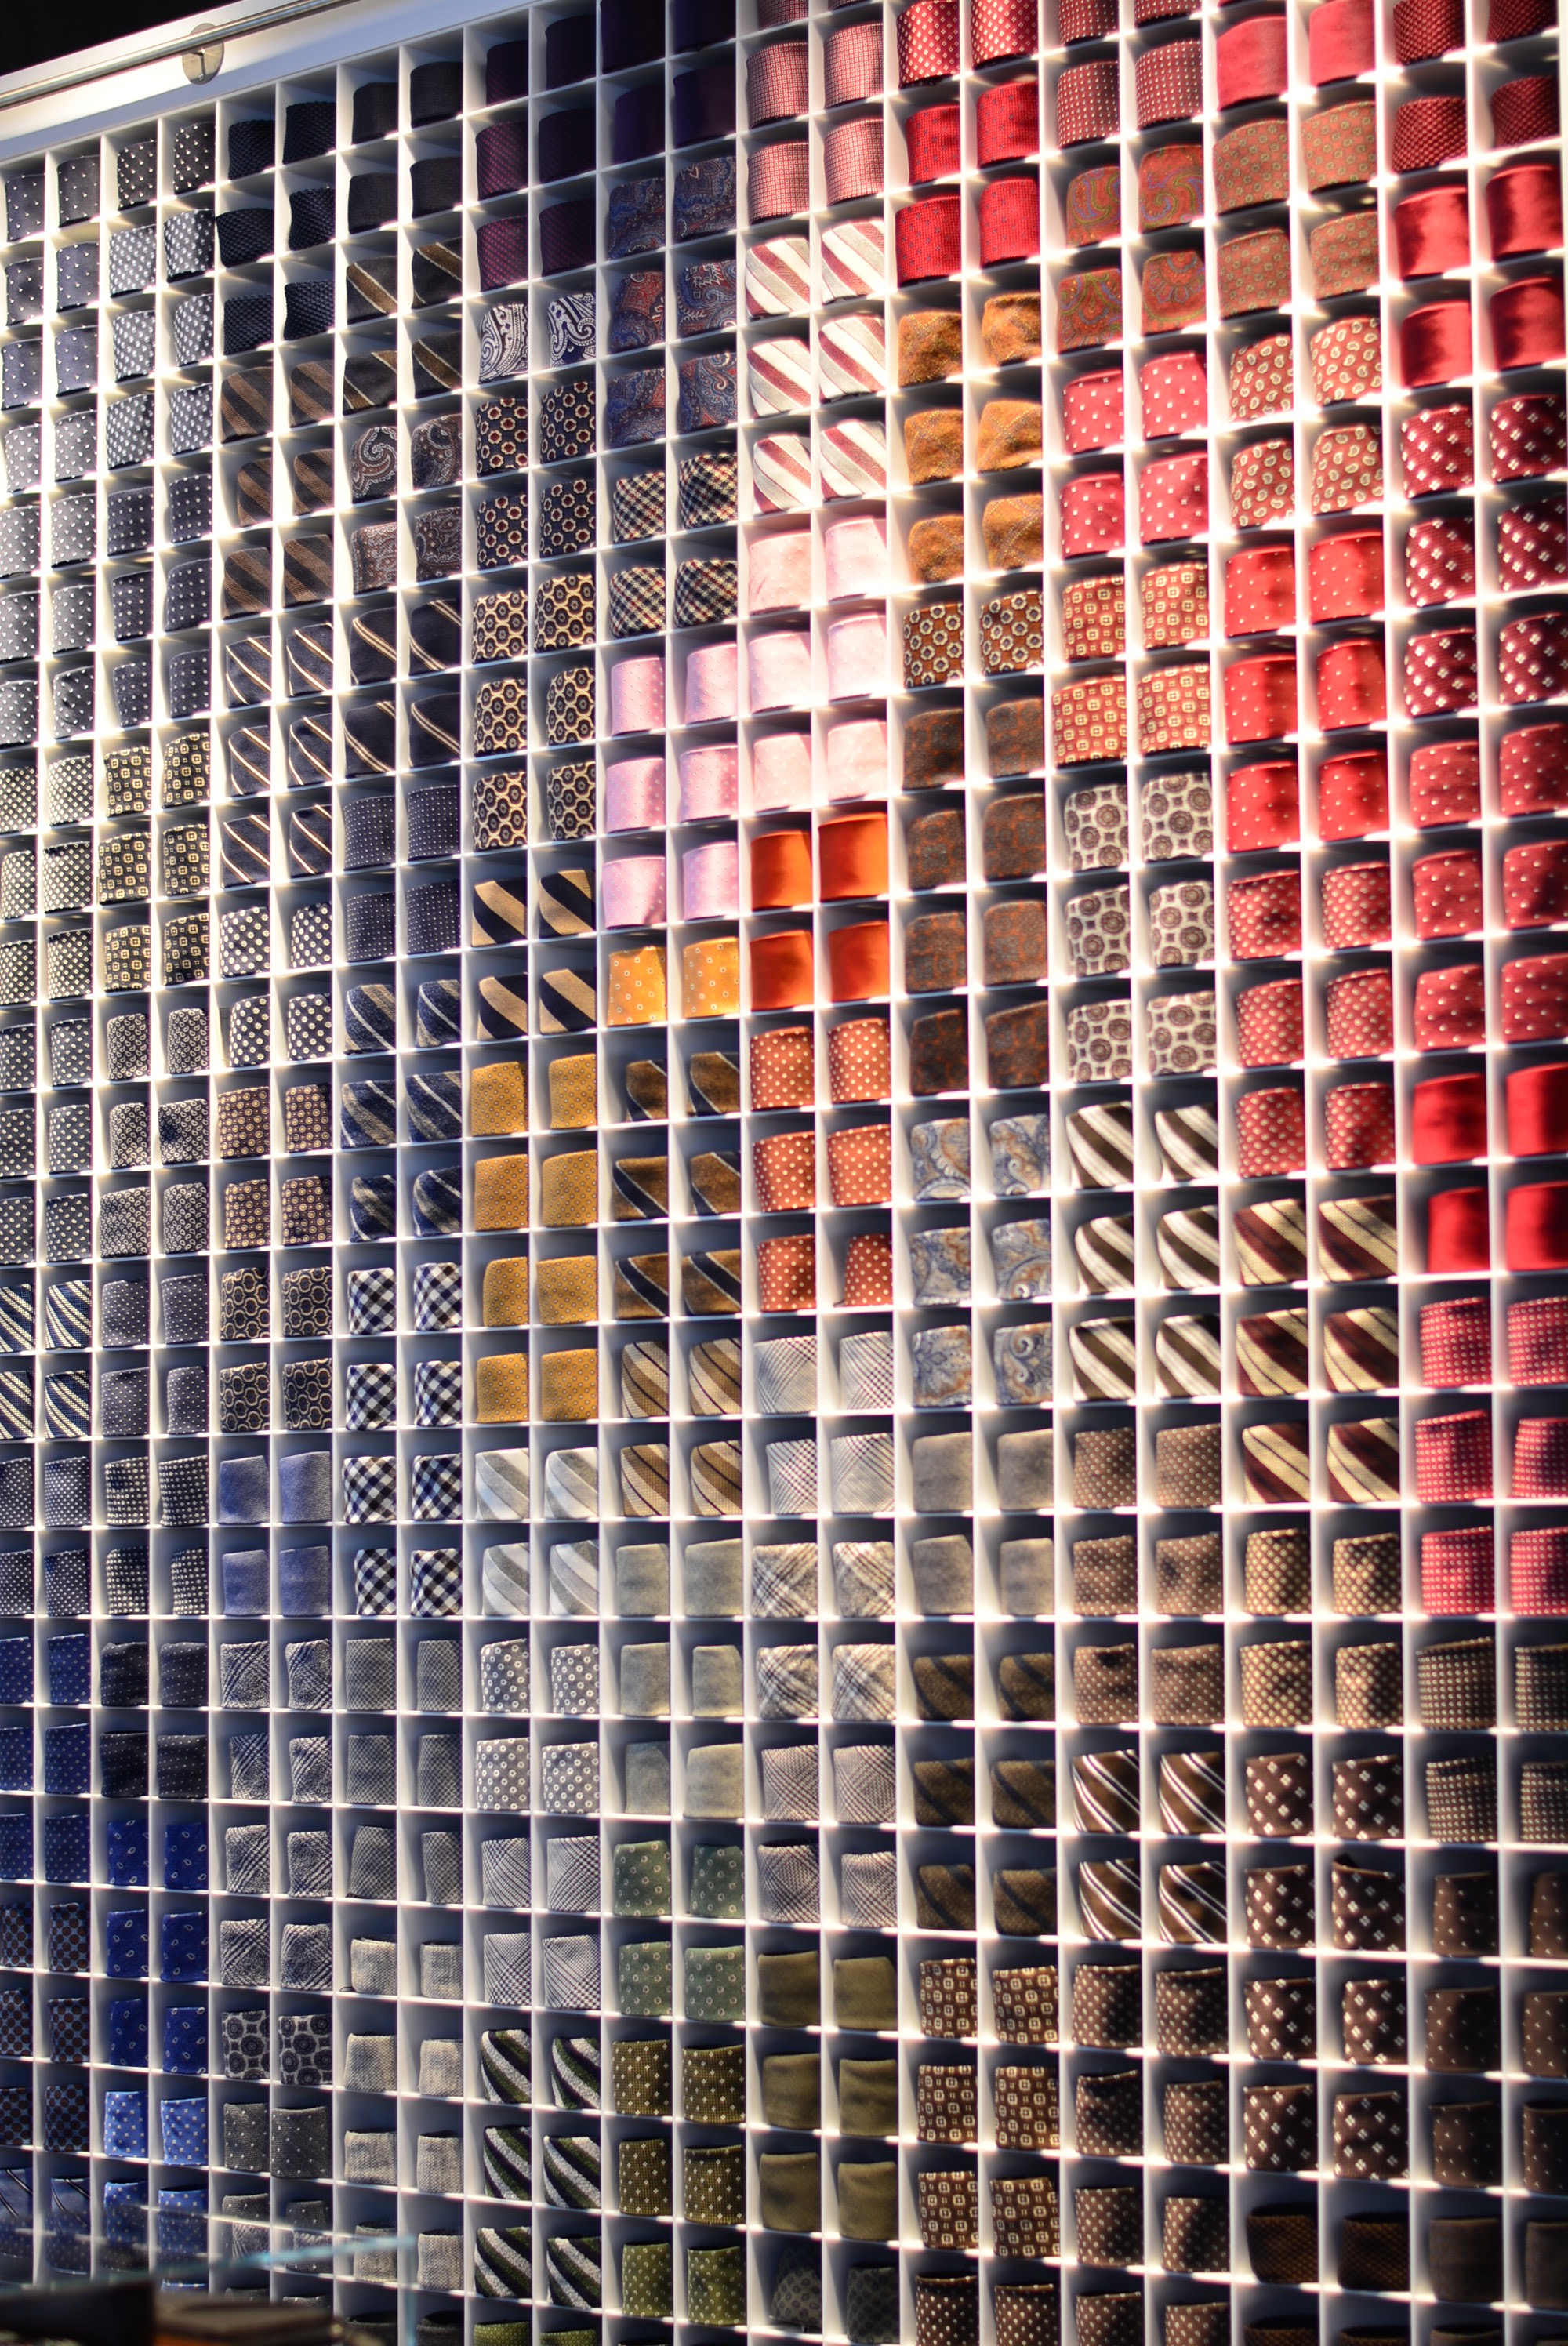 Tie wall at SuitSupply